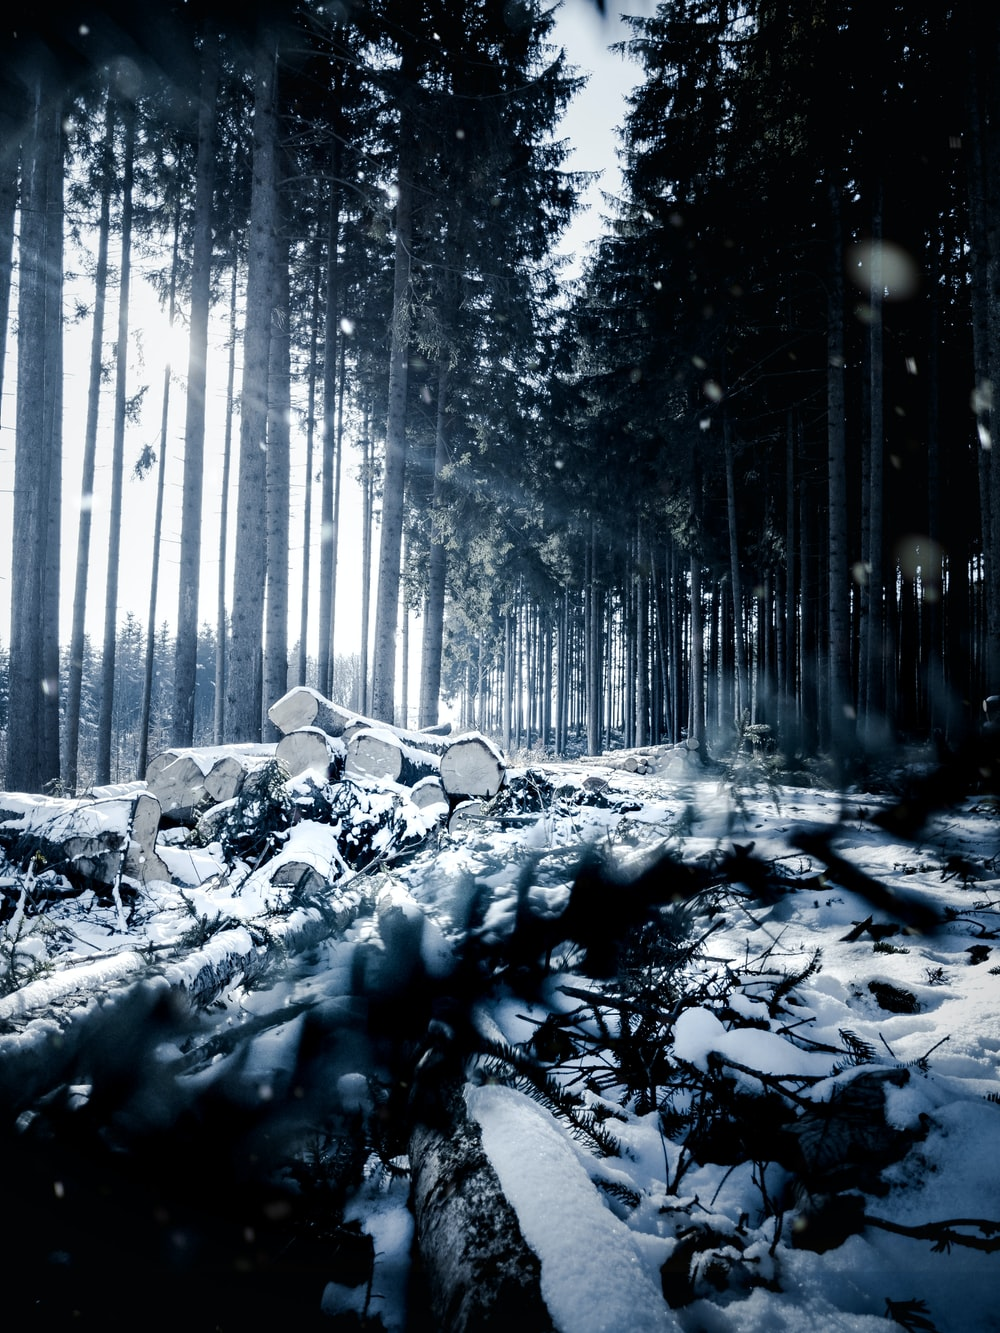 snow covered ground in forest